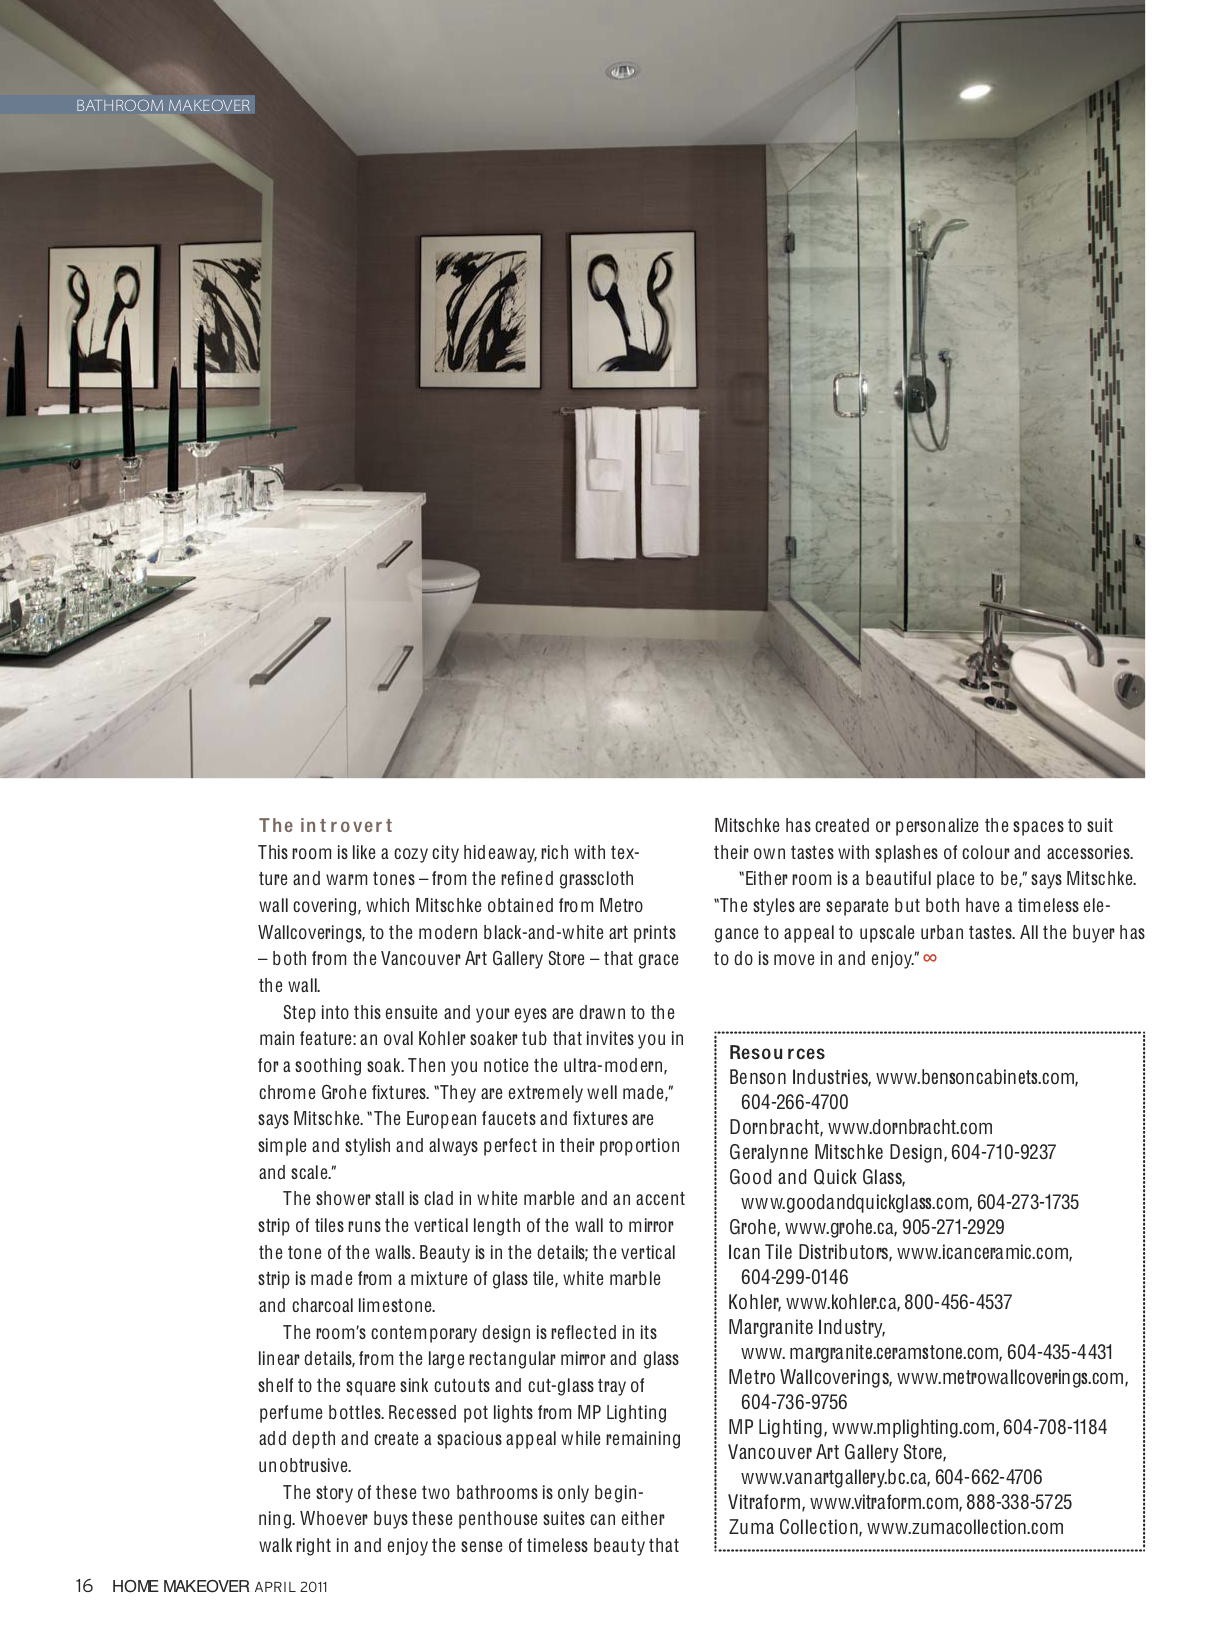 home_makeover_magazine_vancouver_-_april_2011 (dragged) 4.png